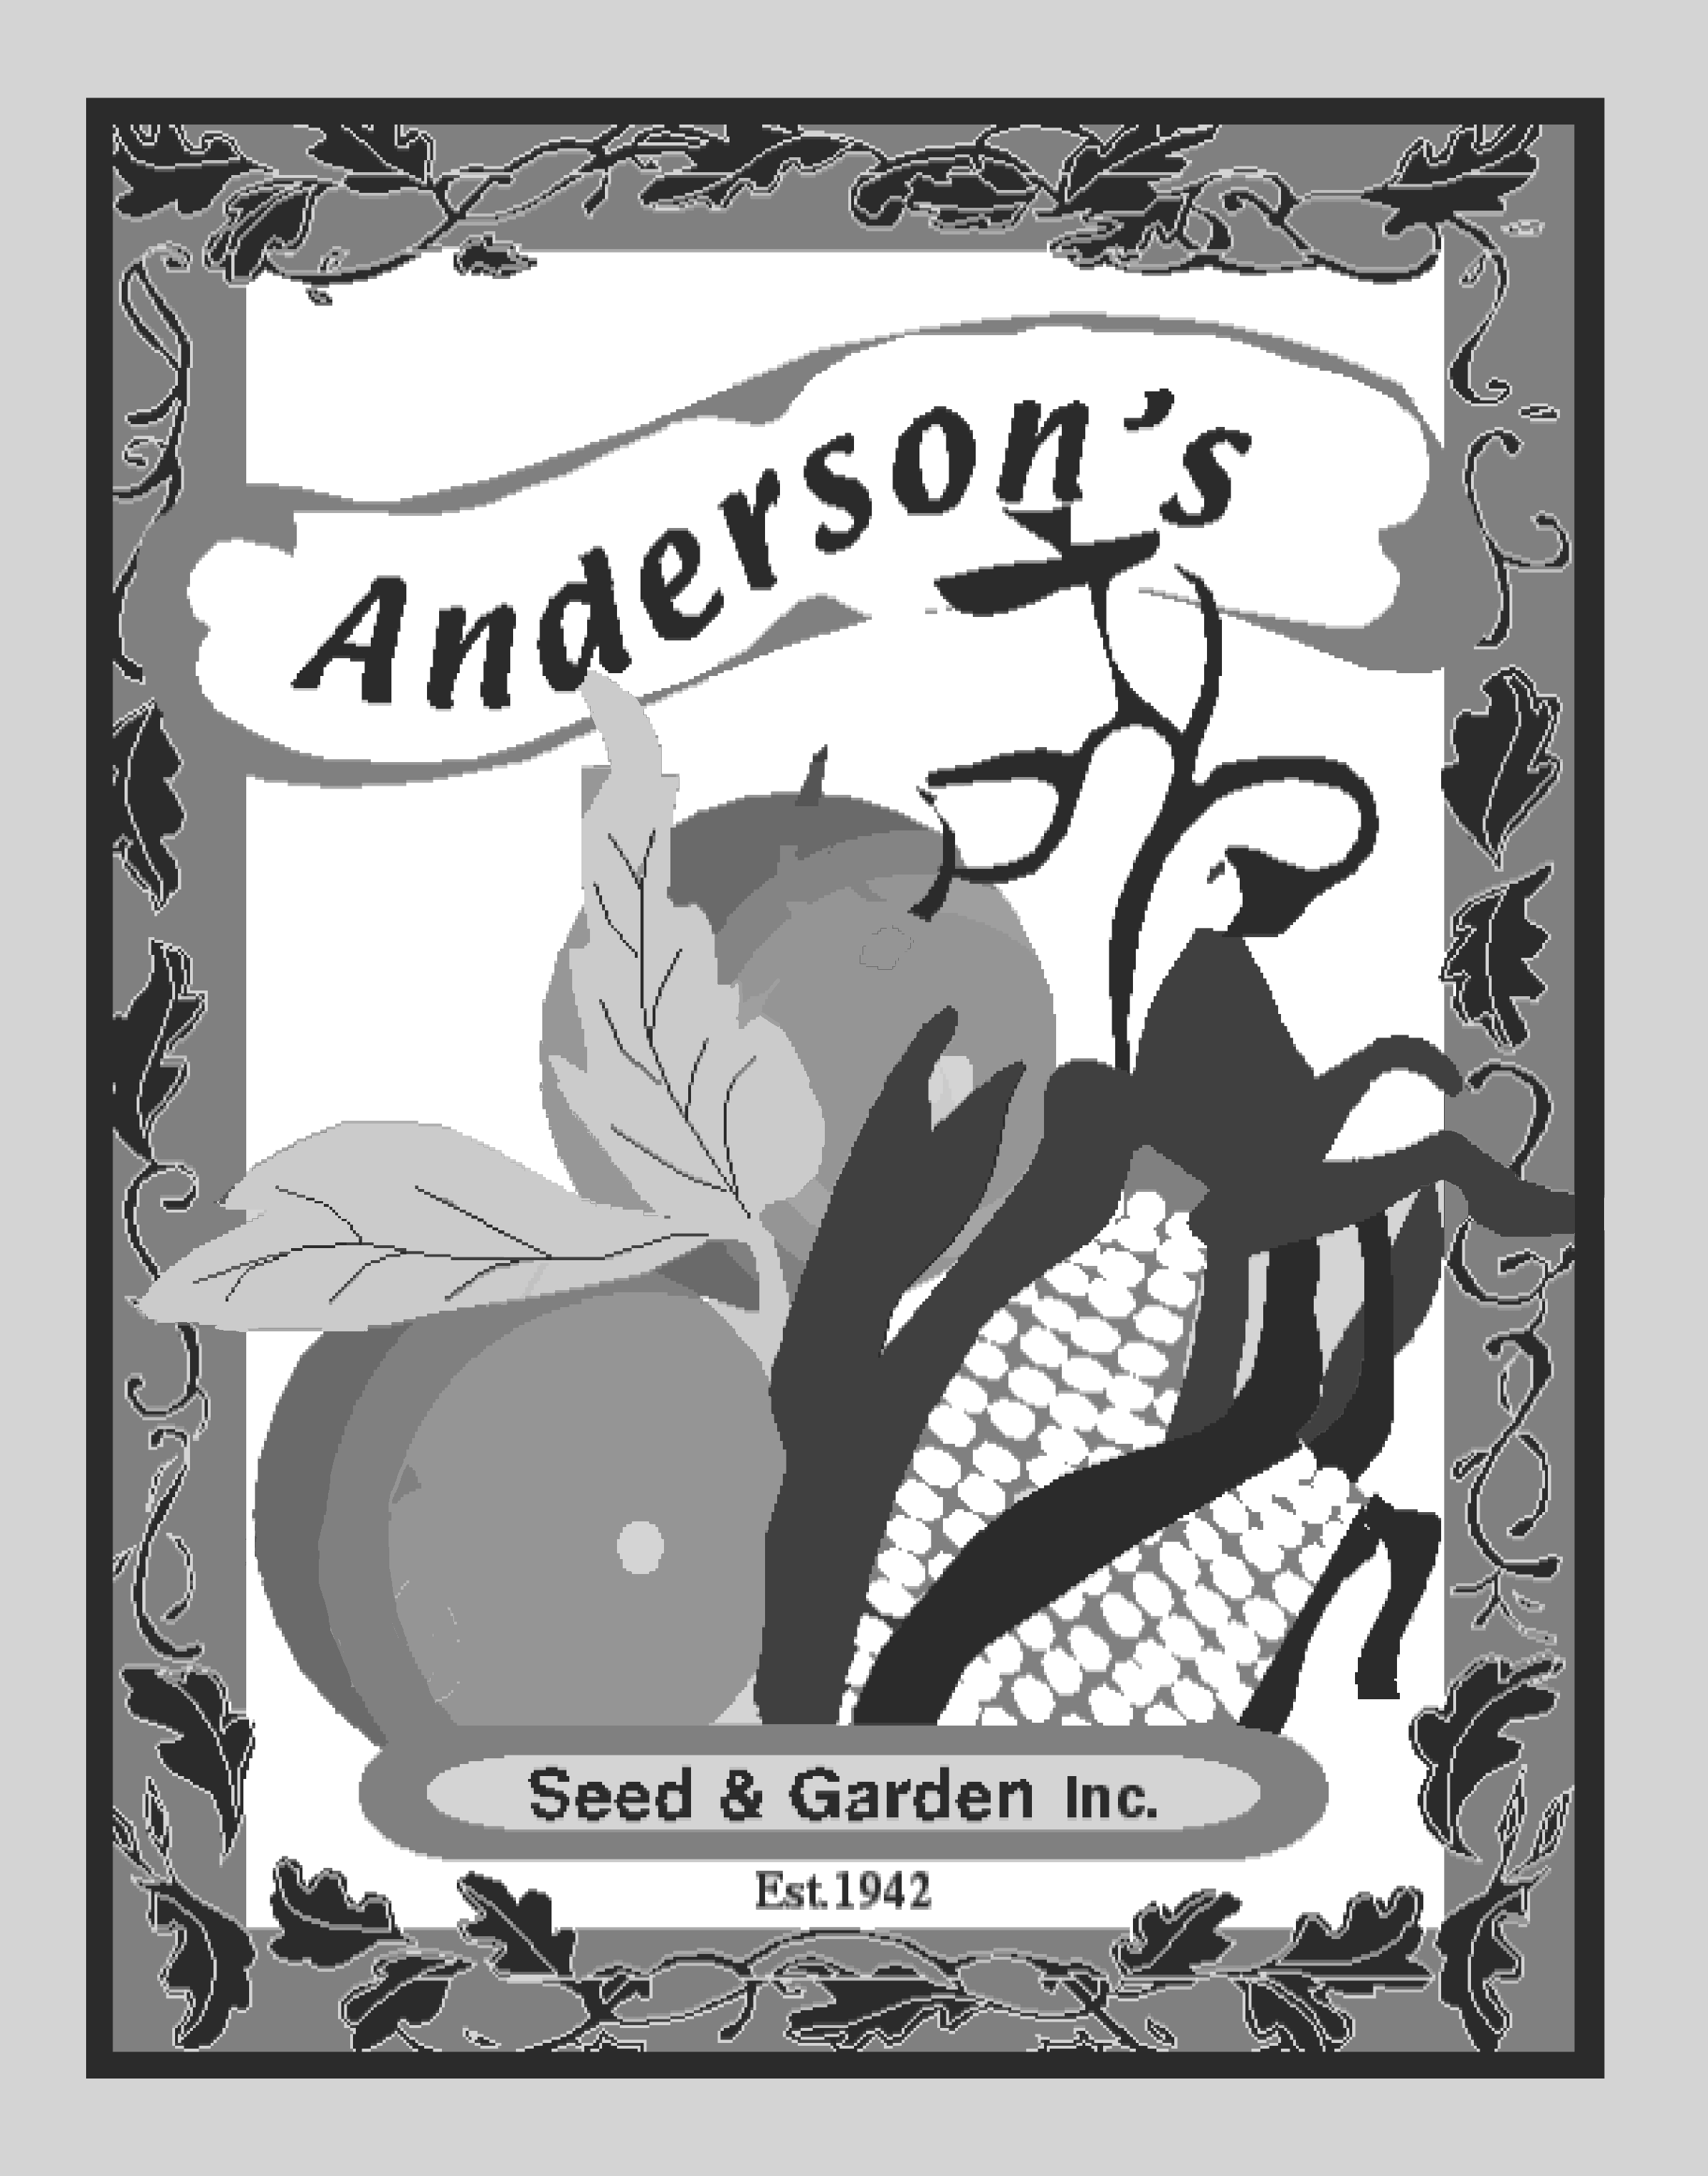 Marketmore Heirloom Cucumber Seed 1oz.